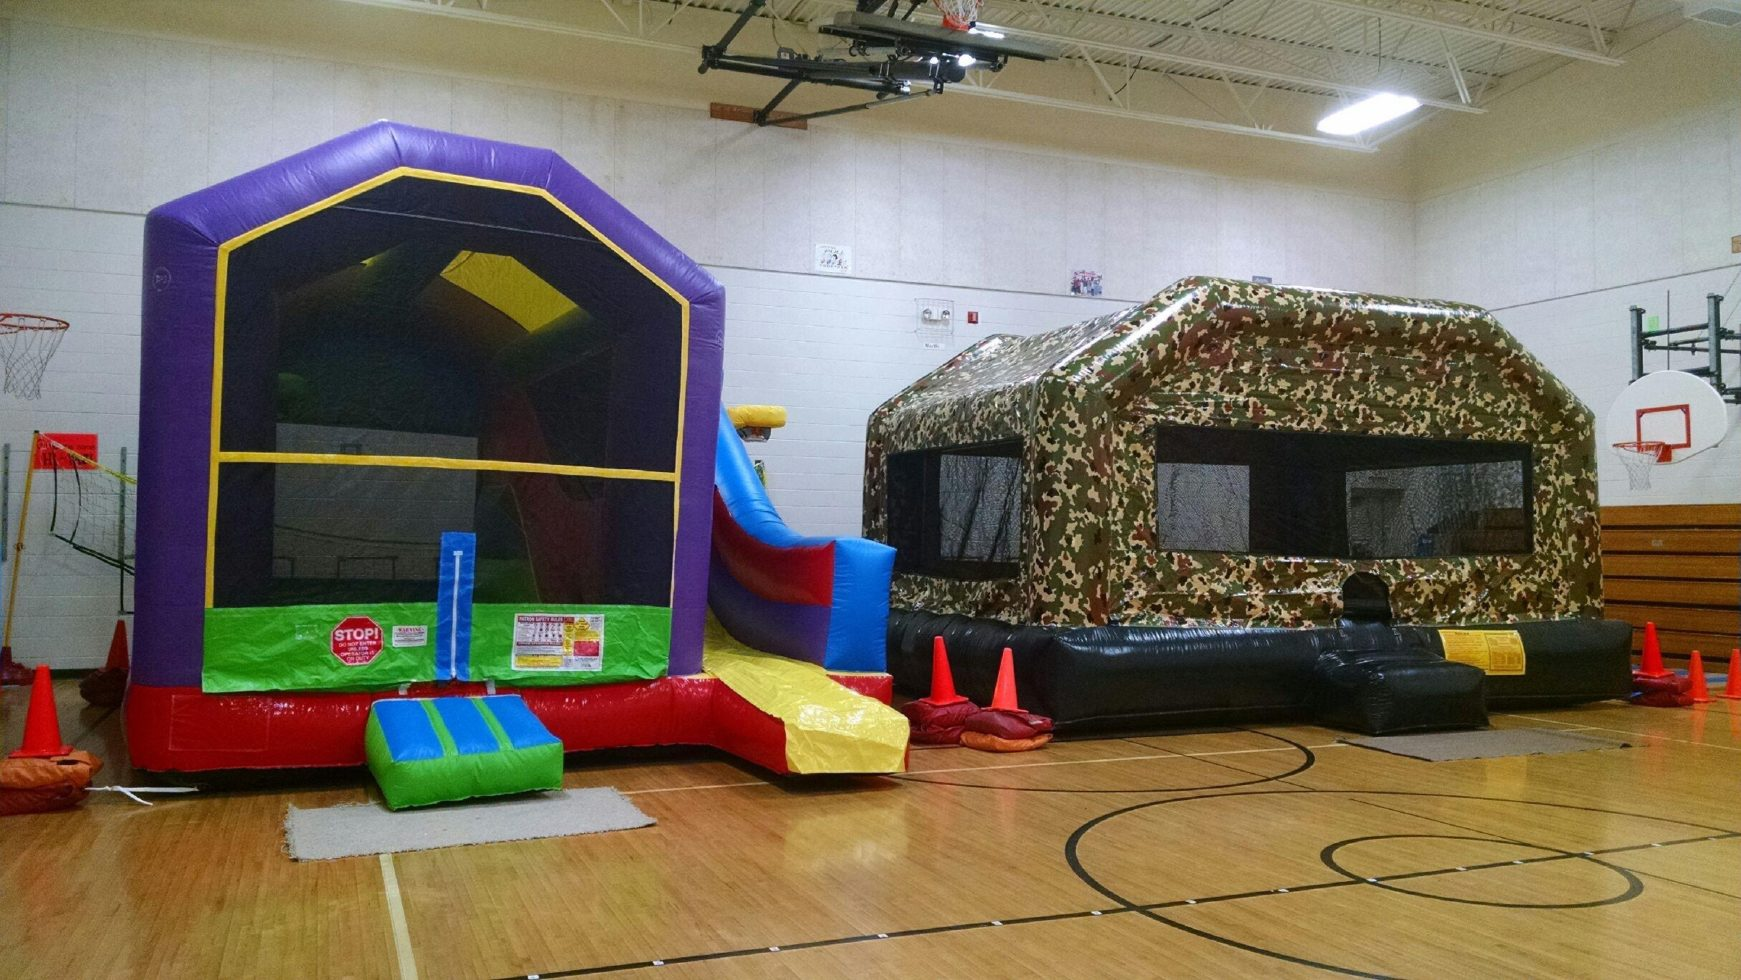 Camo bounce house setup inside gym